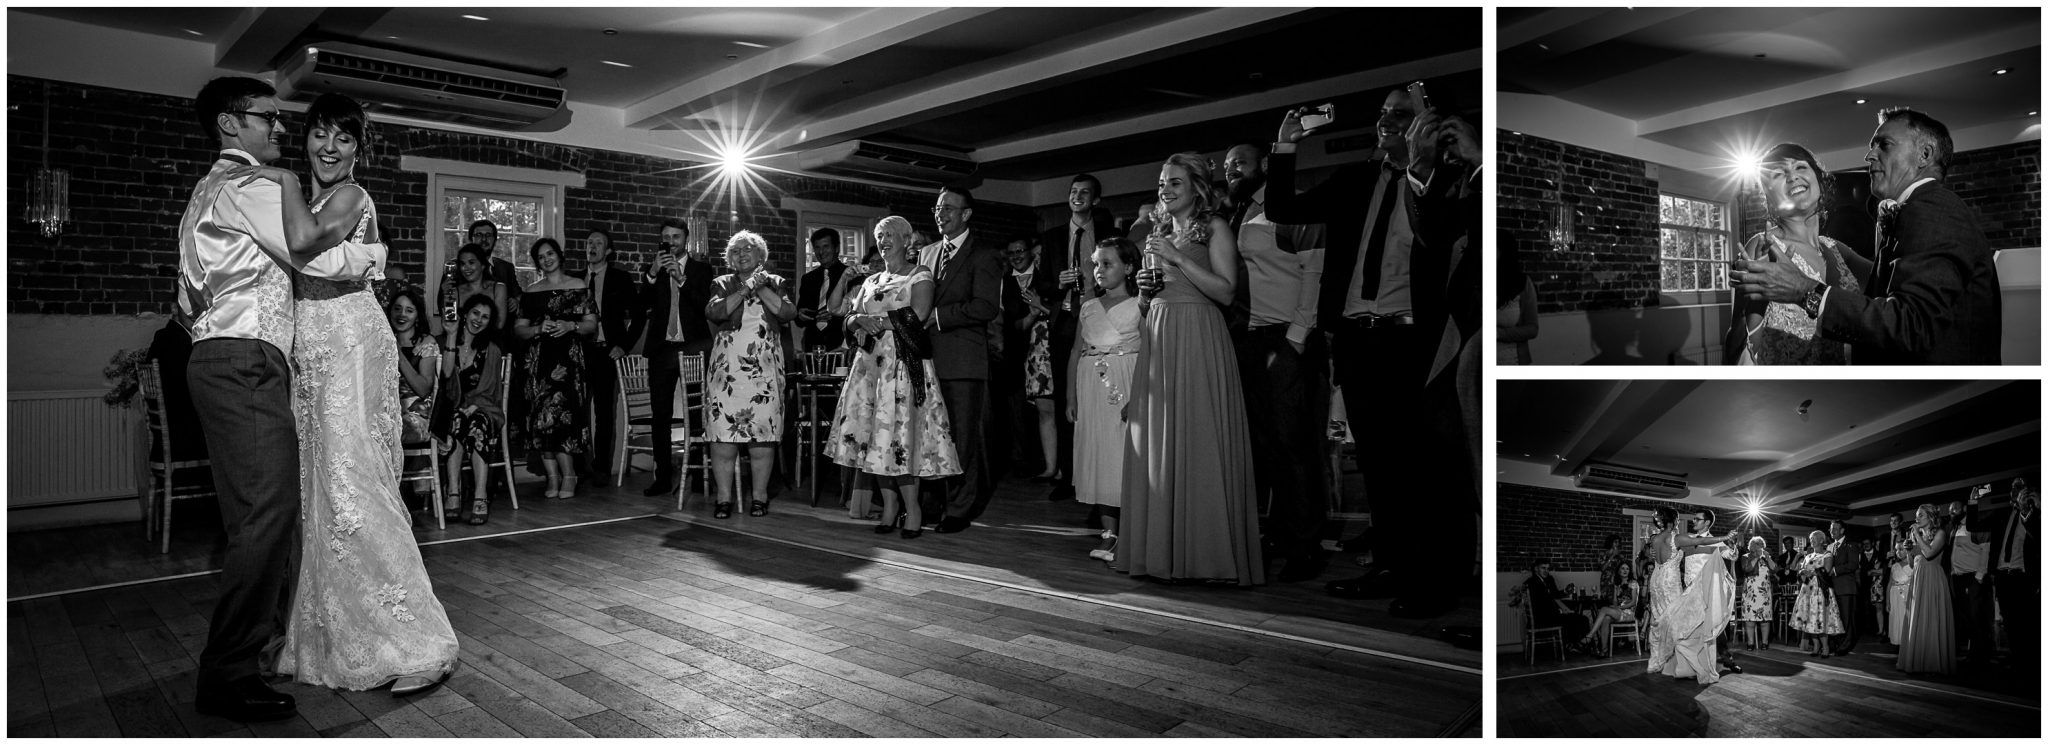 Sopley Mill wedding photography black and white dance photos